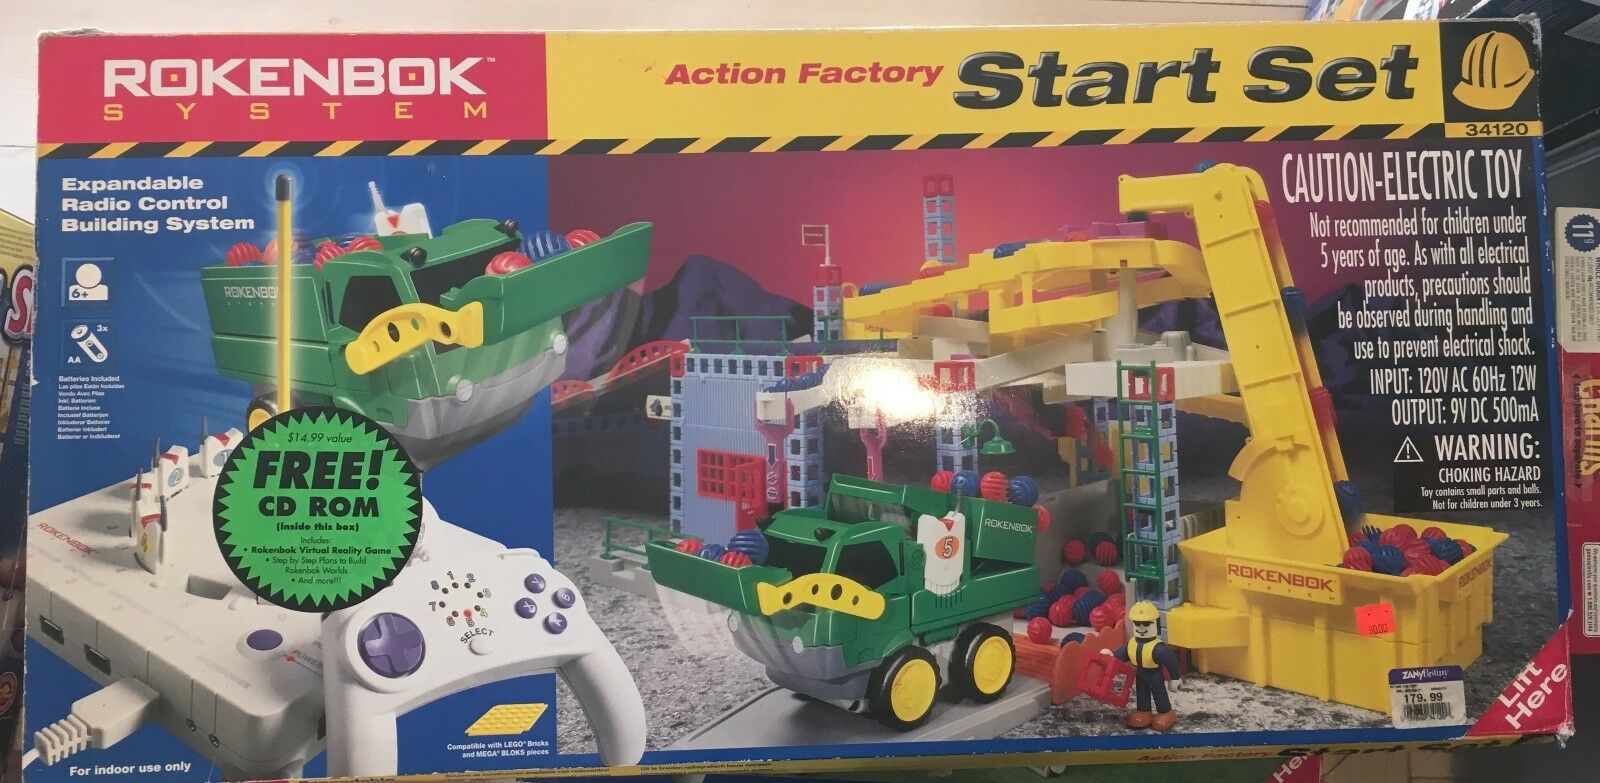 34120 Rokenbok Action Factory Start set HUGE SET   Nearly complete